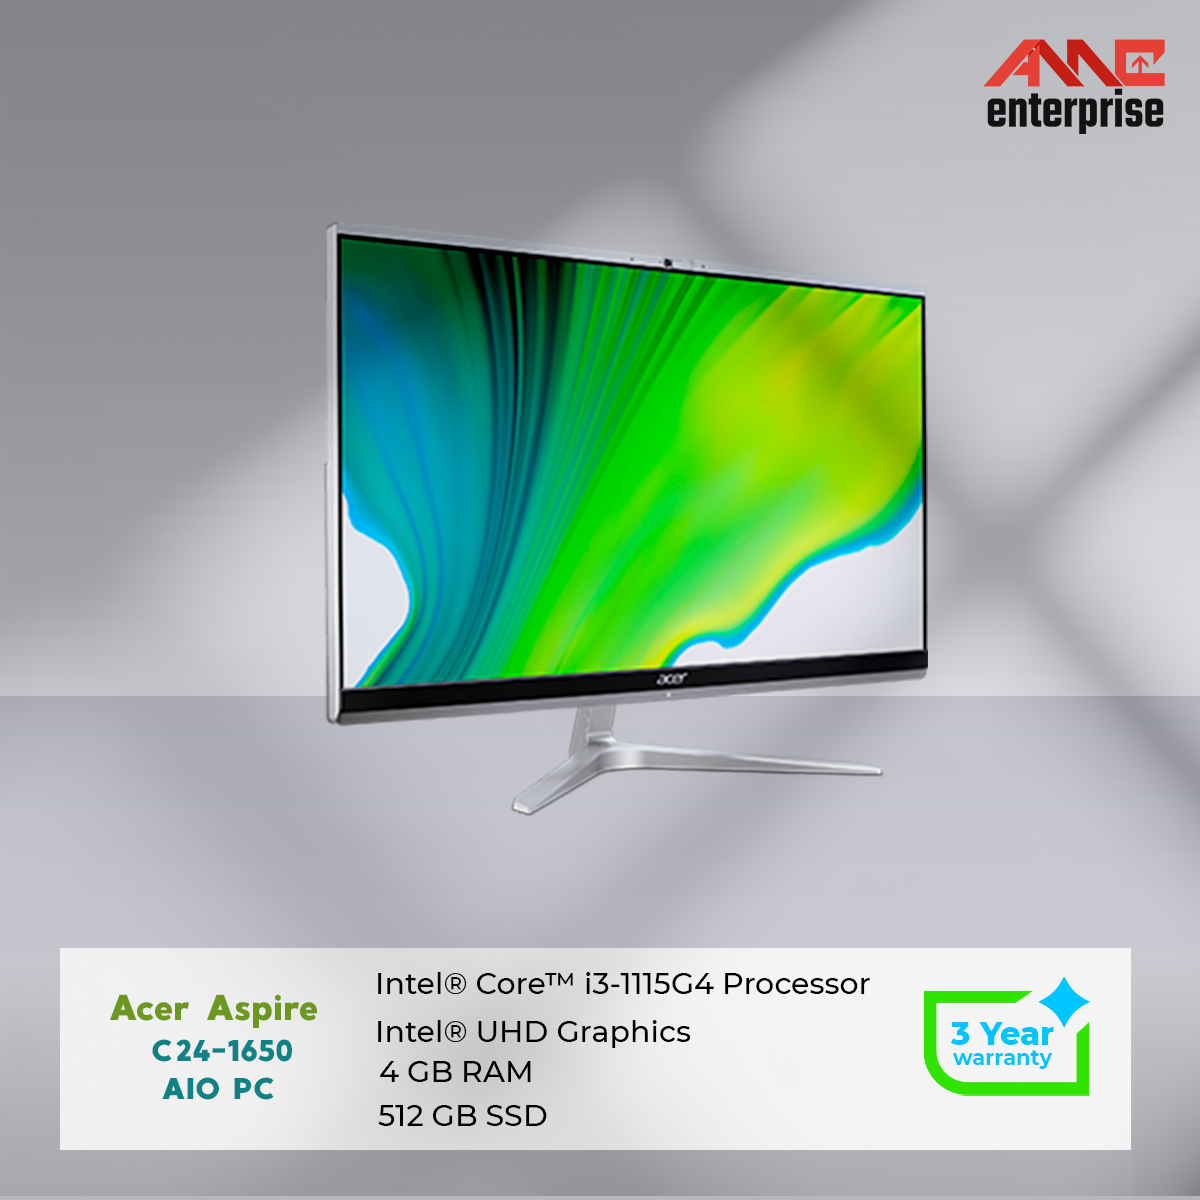 ACER Aspire C24-1650 ALL-IN-ONE PC (2).png